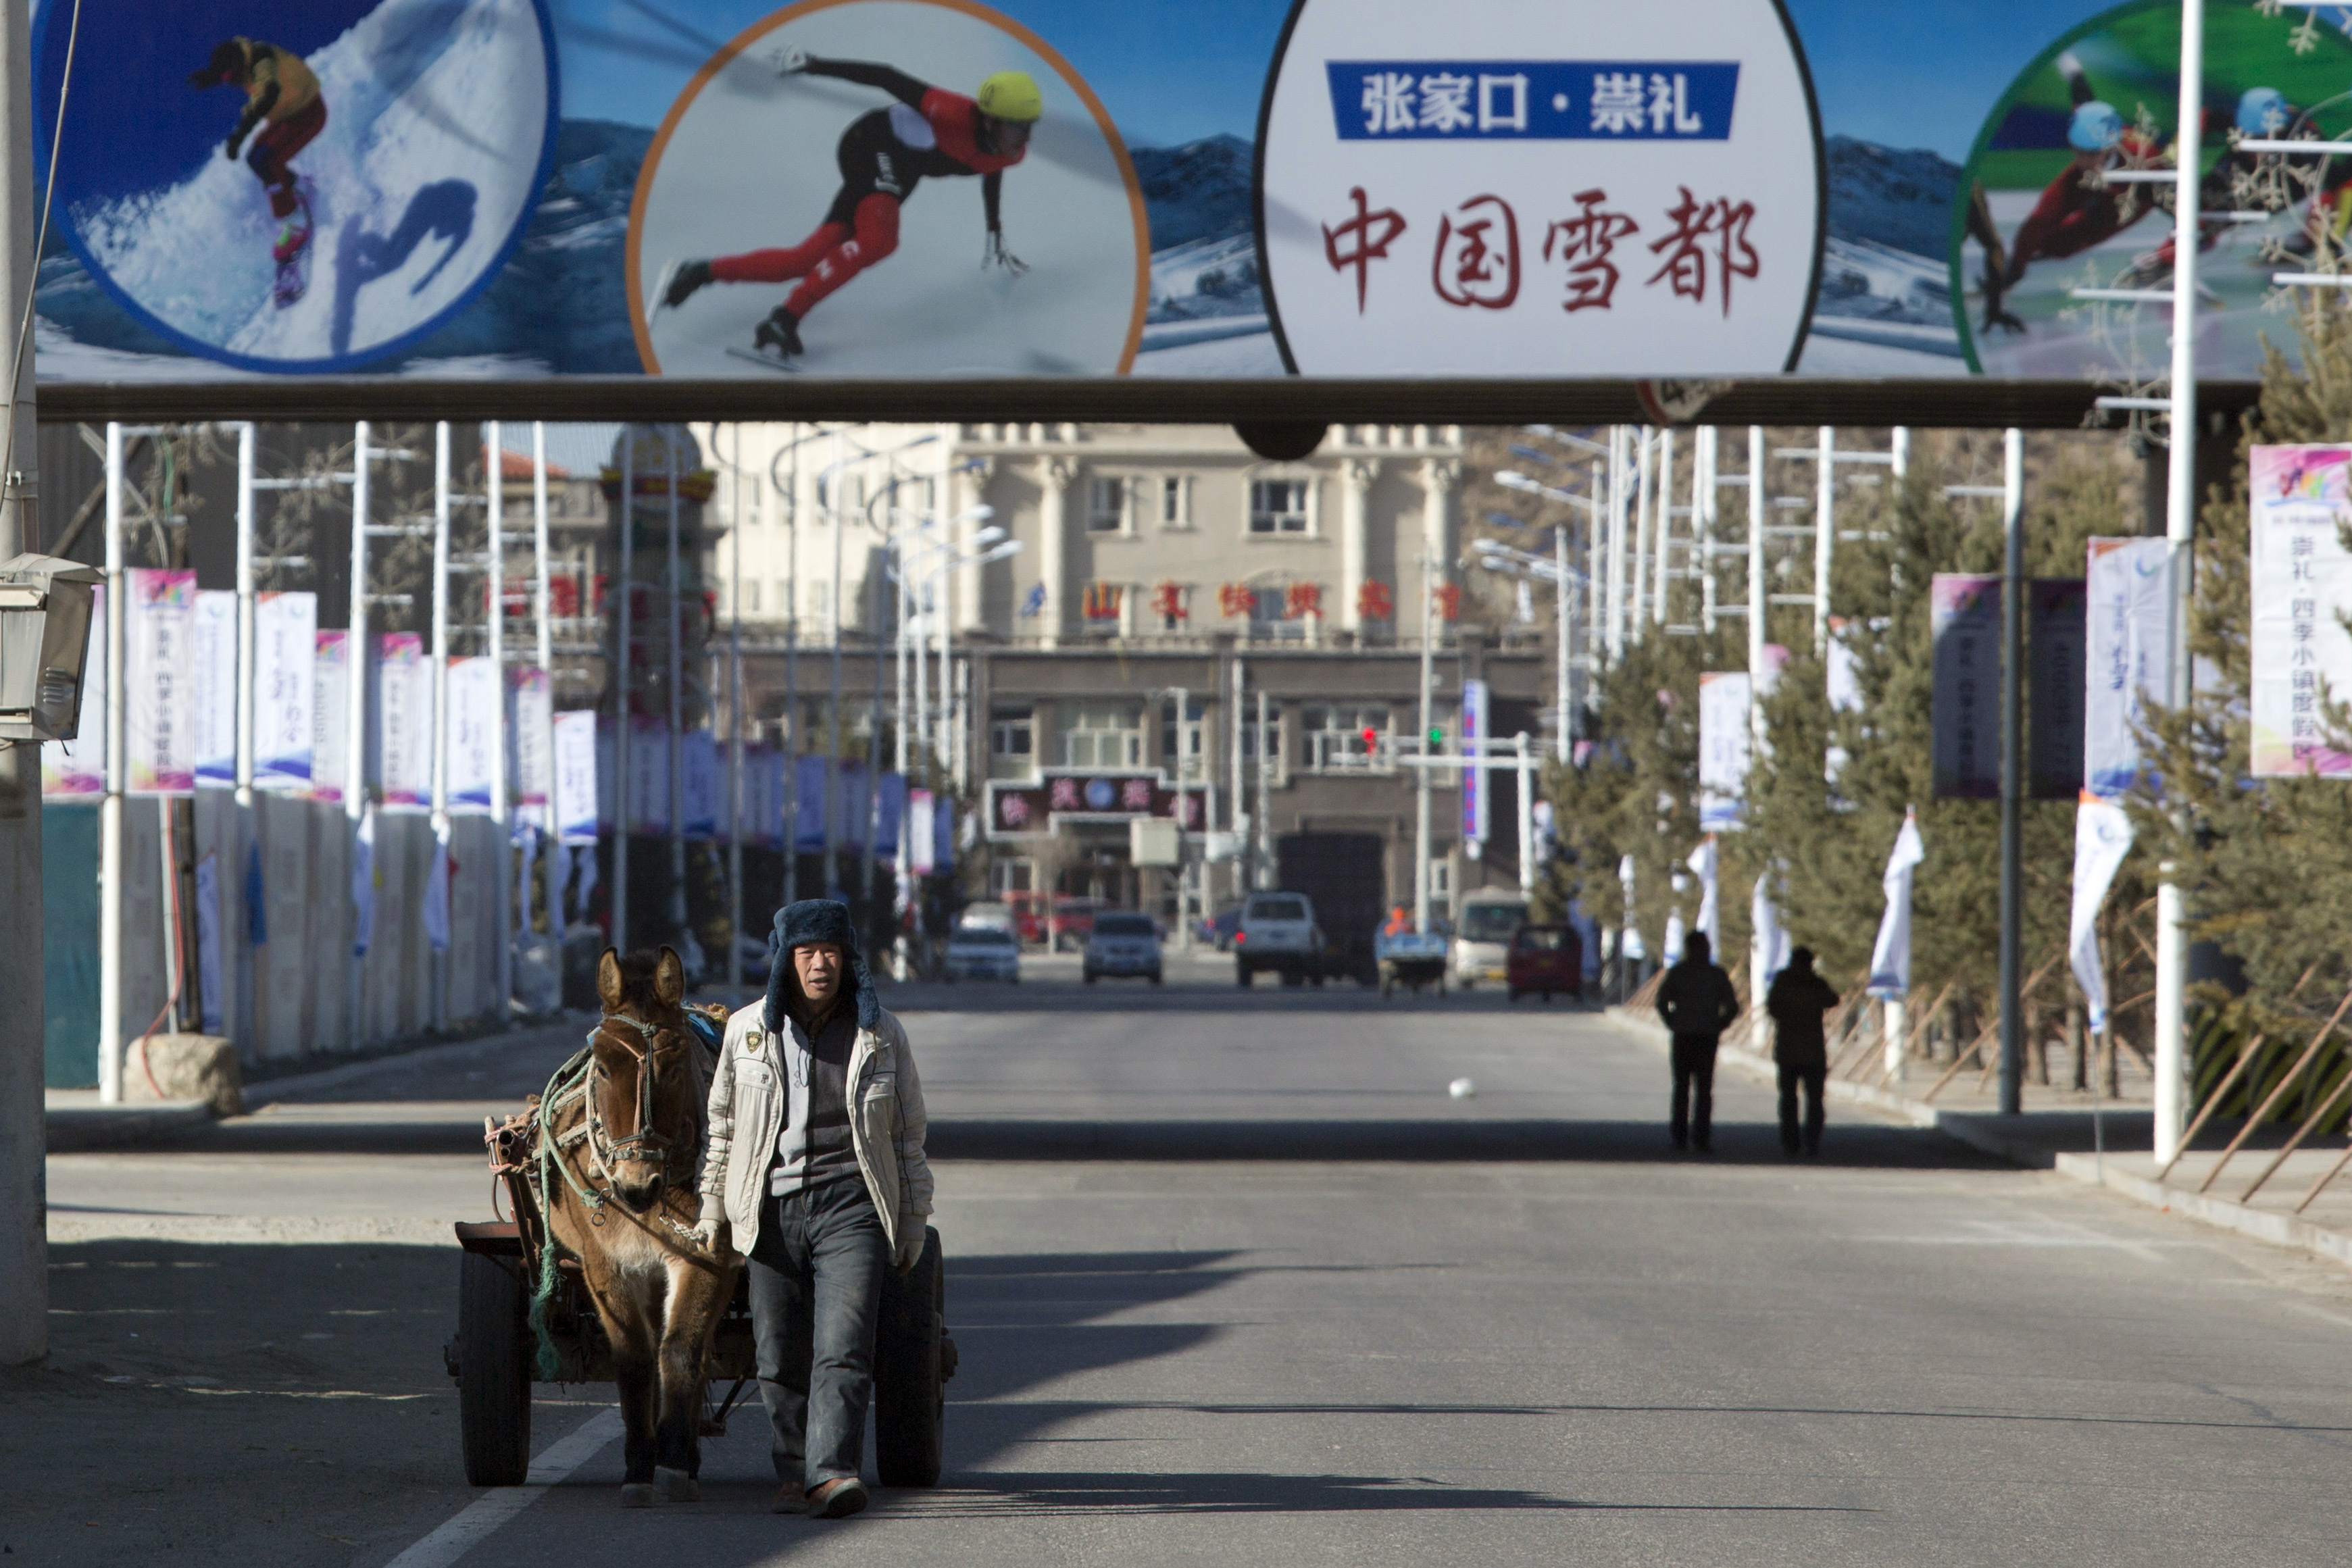 In this photo taken Sunday, Dec. 7, 2014, a man leads a mule pulling a cart past publicity billboard promoting Zhangjiakou, Chongli as the snow capital of China near the Chongli ski area outside Beijing.  Beijing has marketed its bid for the 2022 Winter O